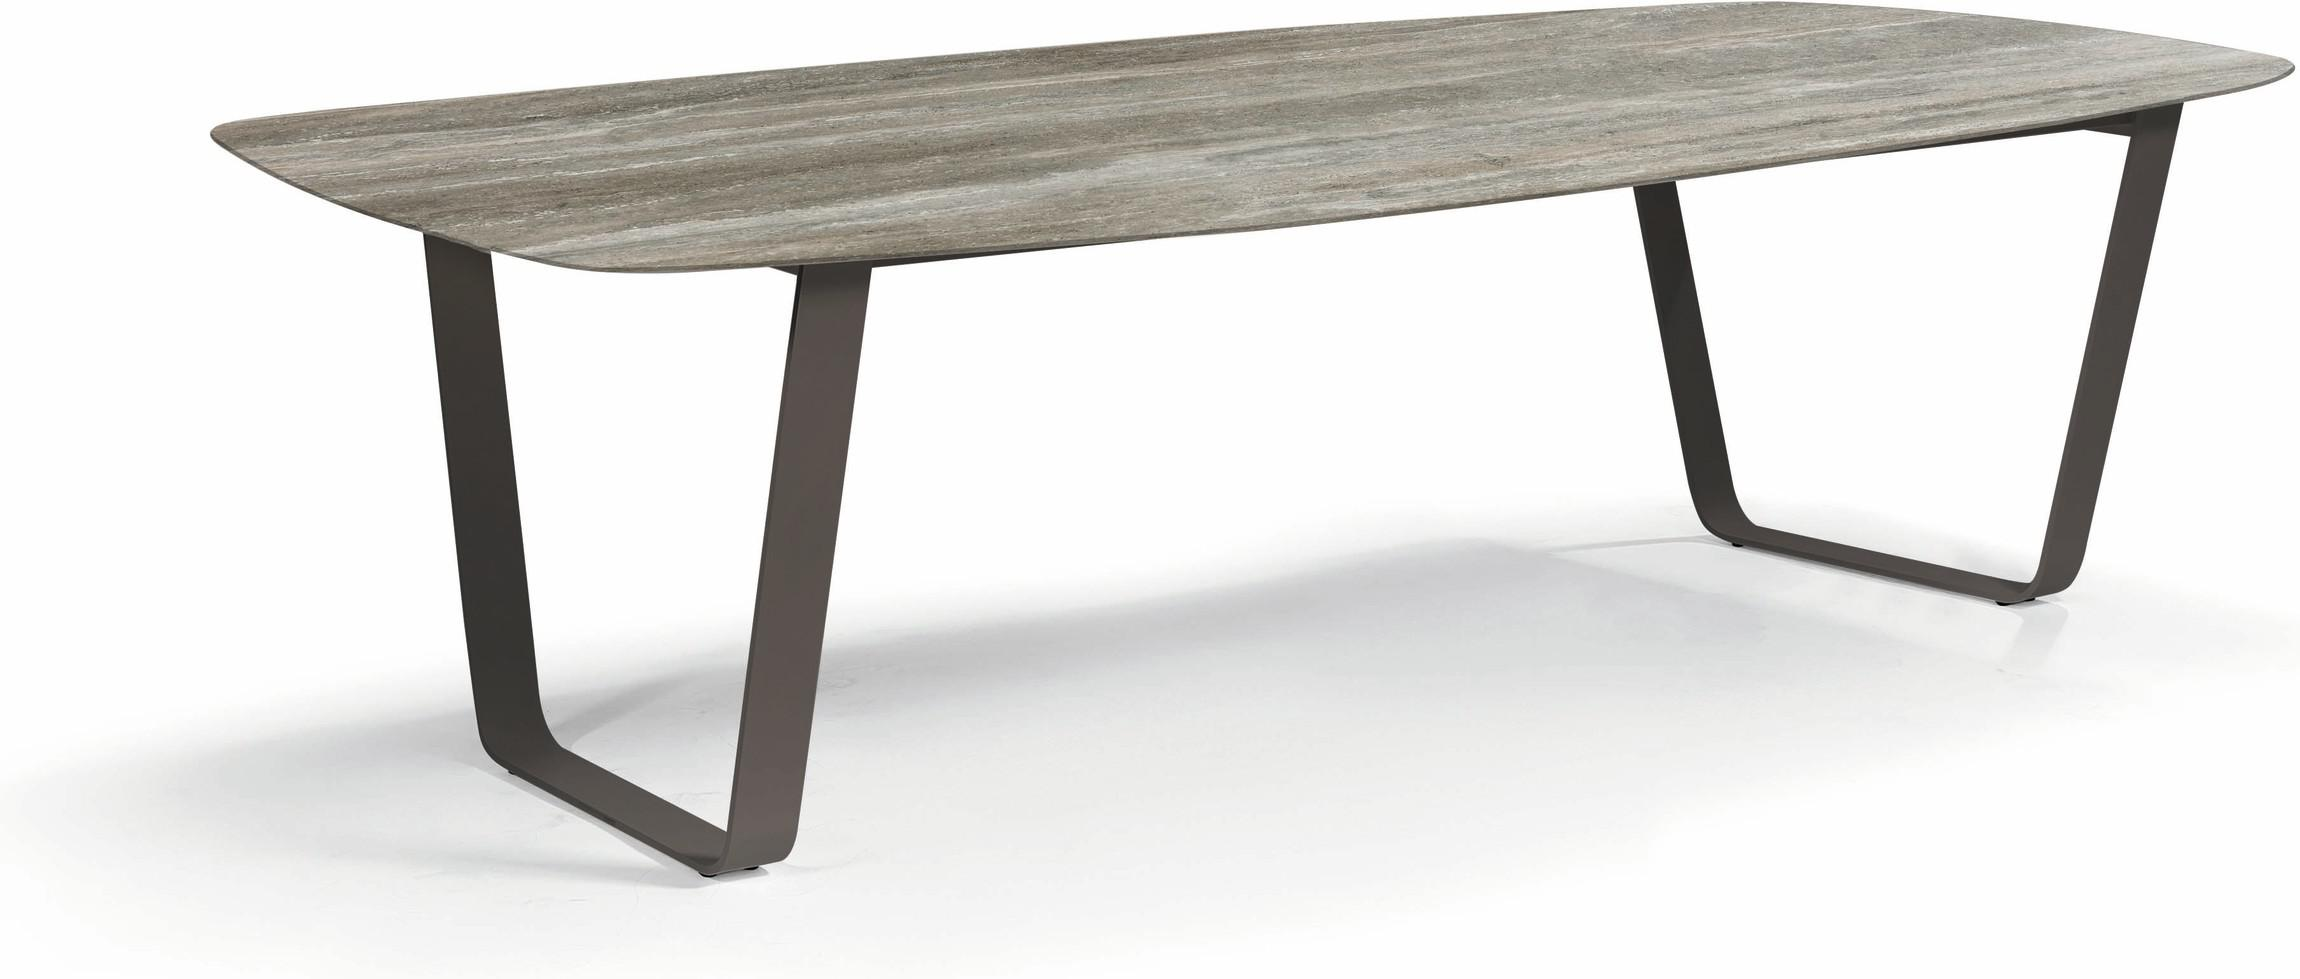 Eettafel Air - lava - CT 264